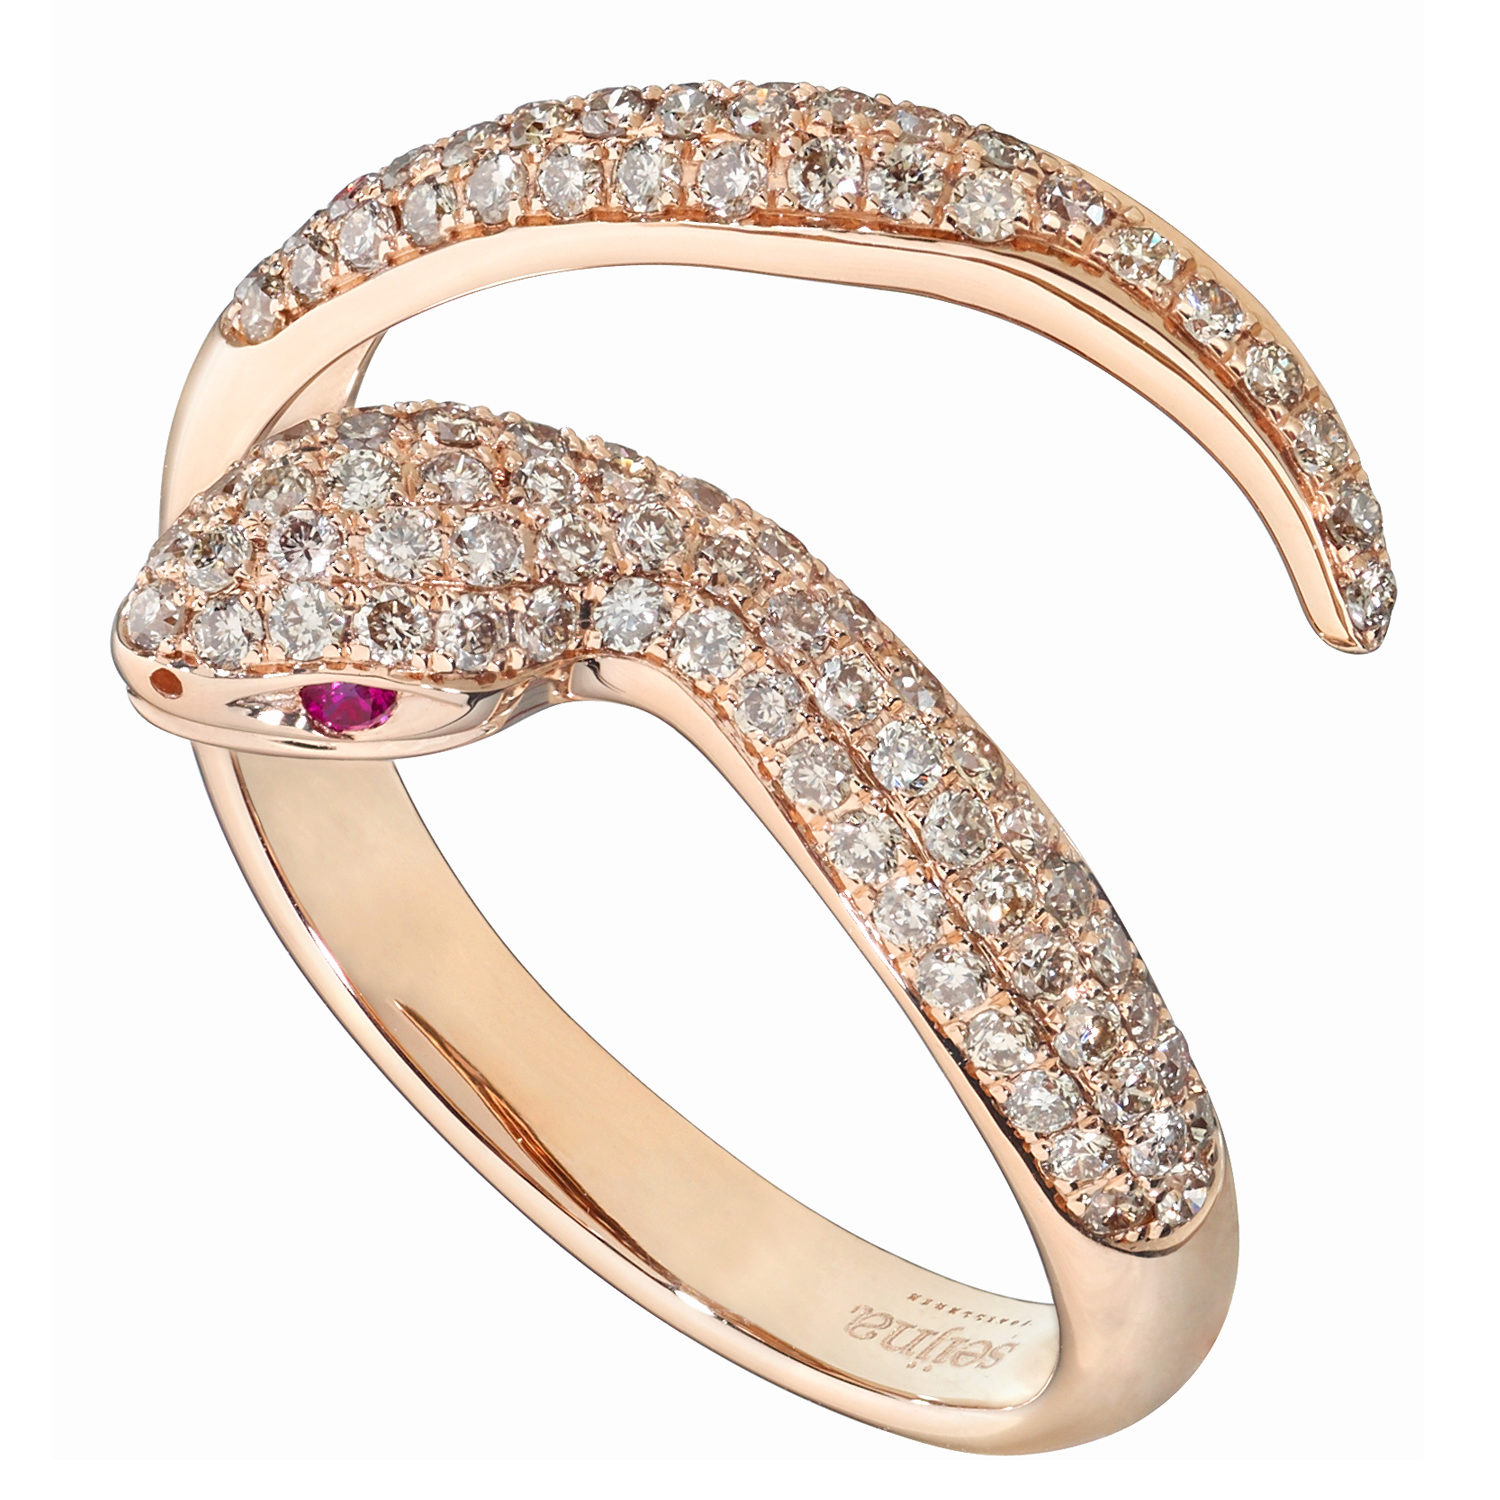 Bague Snake Or rose 18k  sertie de Diamants bruns - Dangerous Kiss